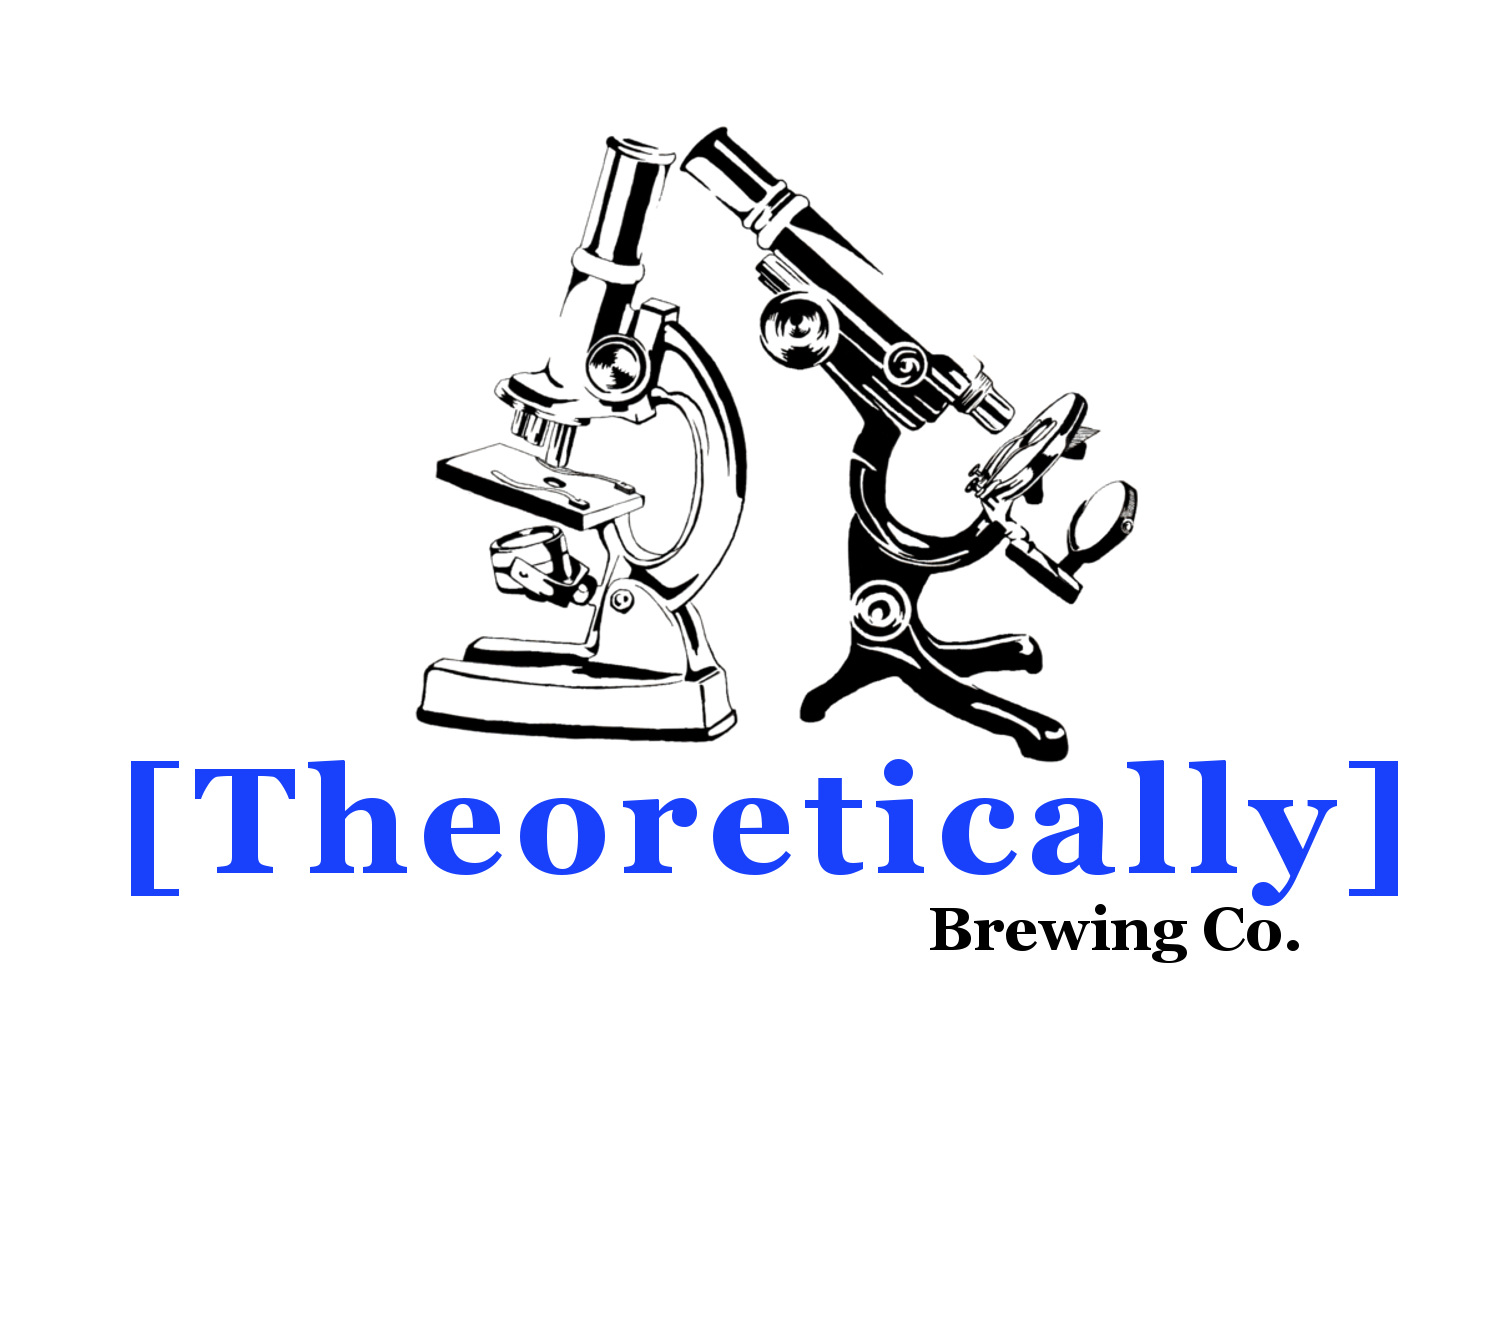 [Theoretically] Brewing Co.